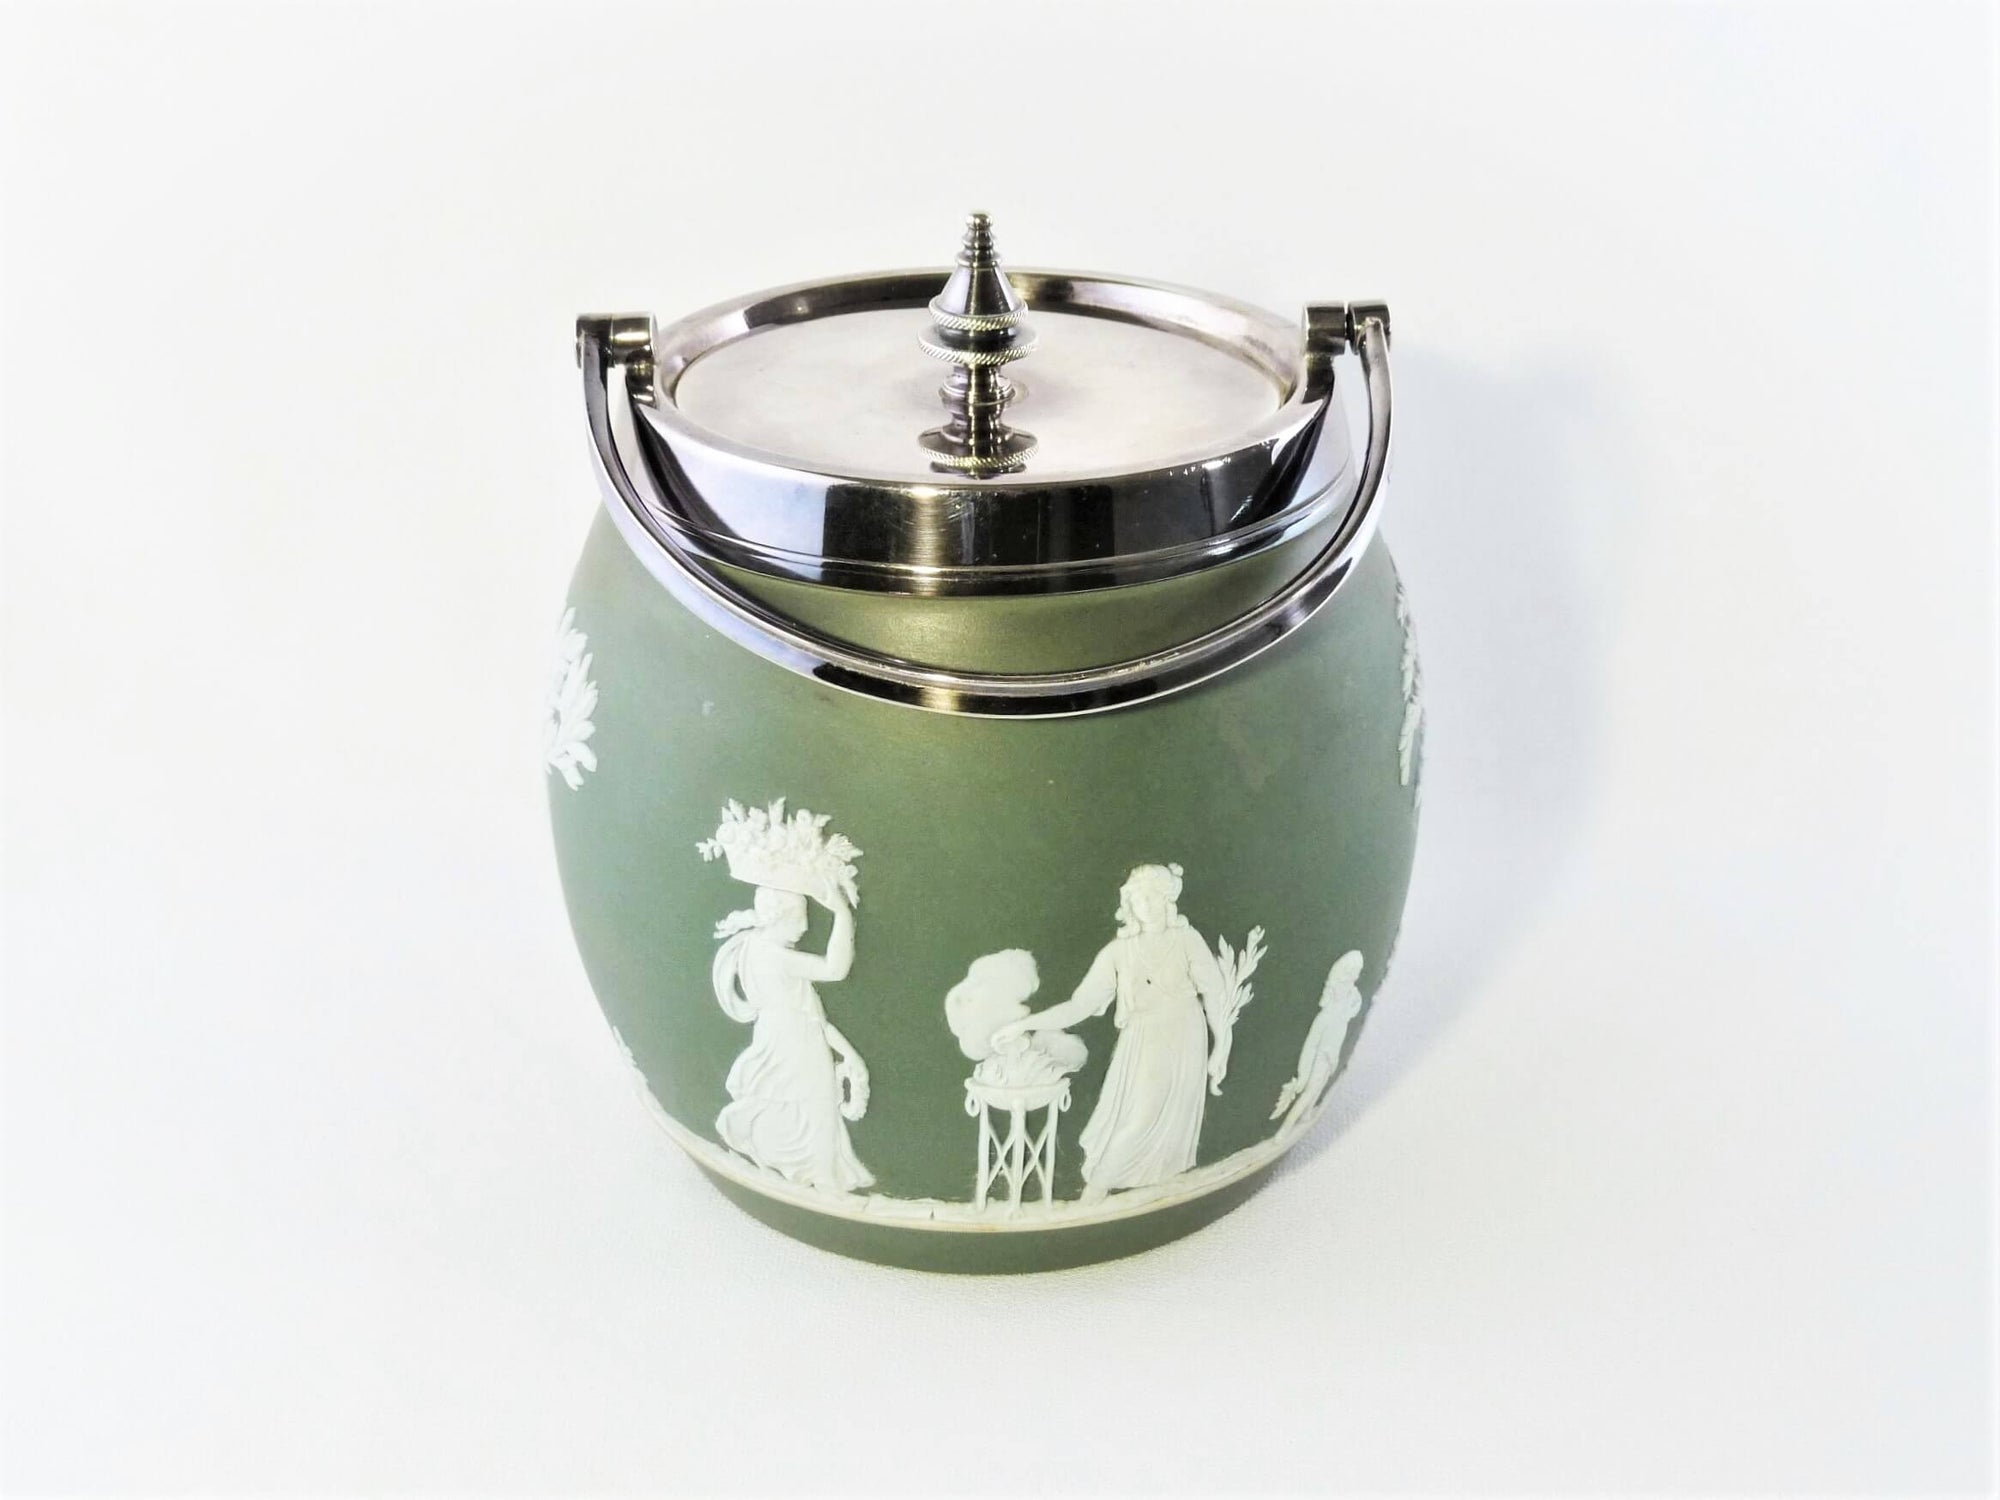 Wedgwood Jasperware Biscuit Barrel, Green Colour, 1891-1908